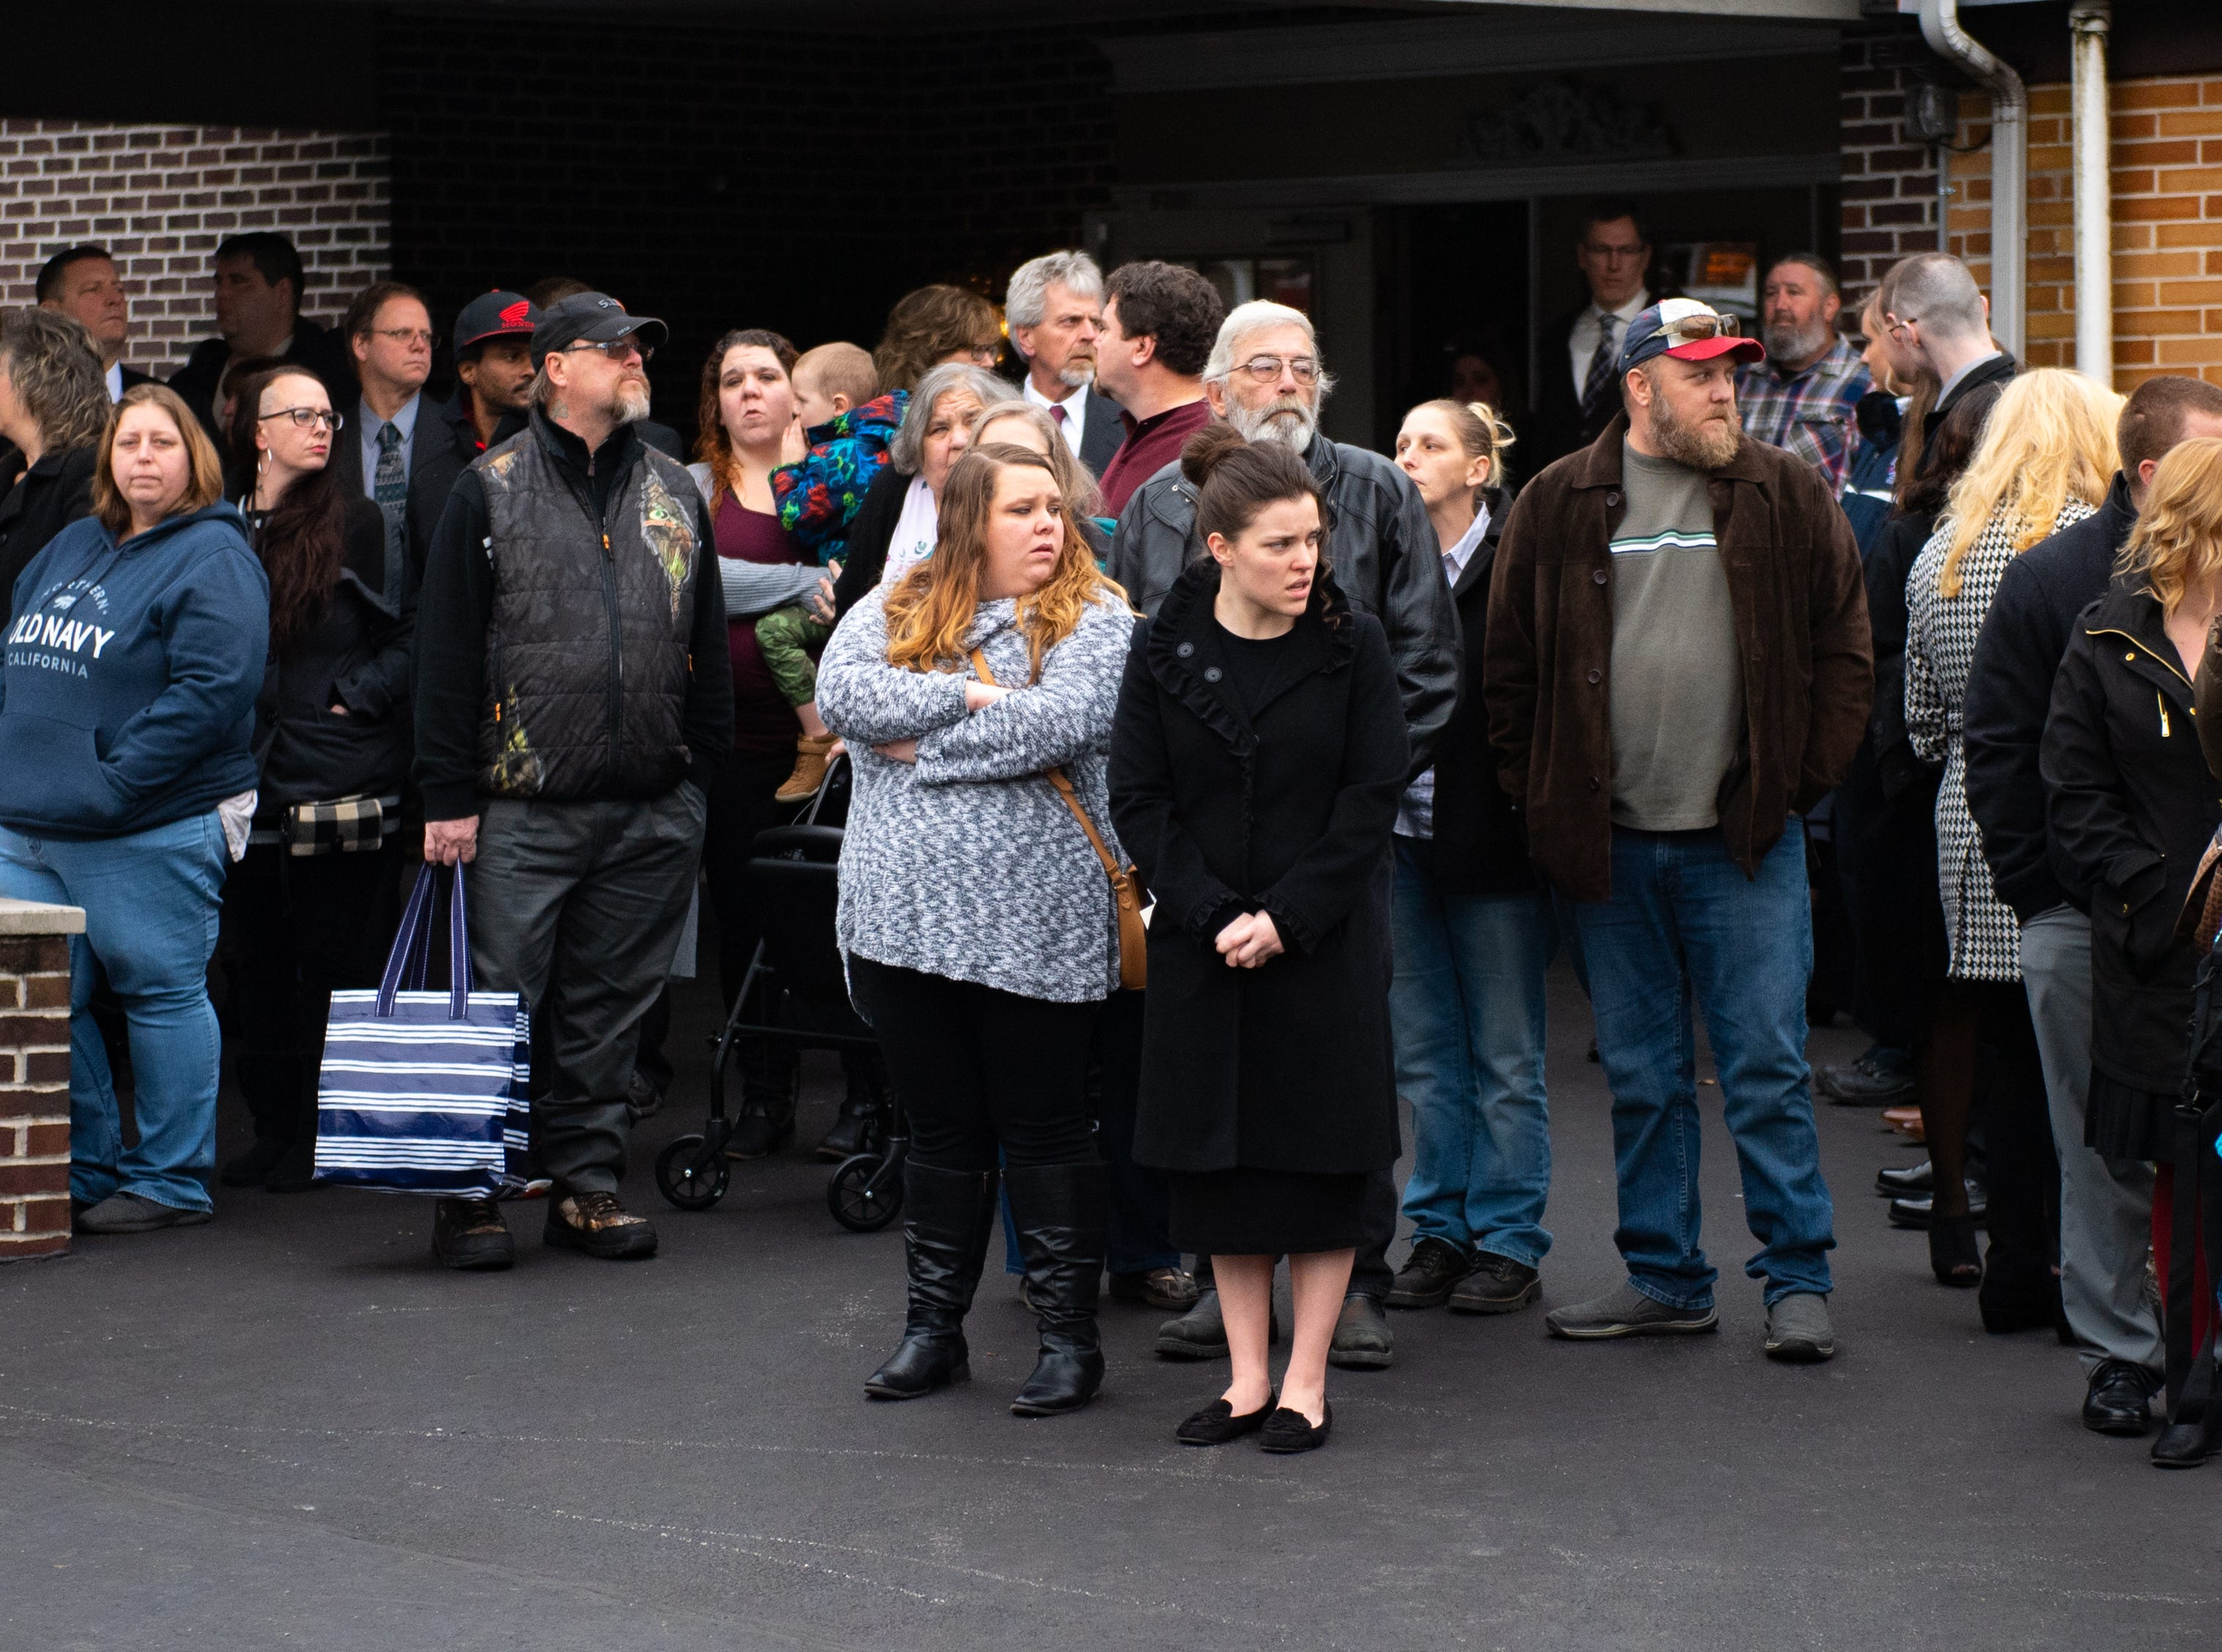 Friends and family see off the ambulance carrying Robert Kohler Sr. It's his last ride, January 4, 2019.